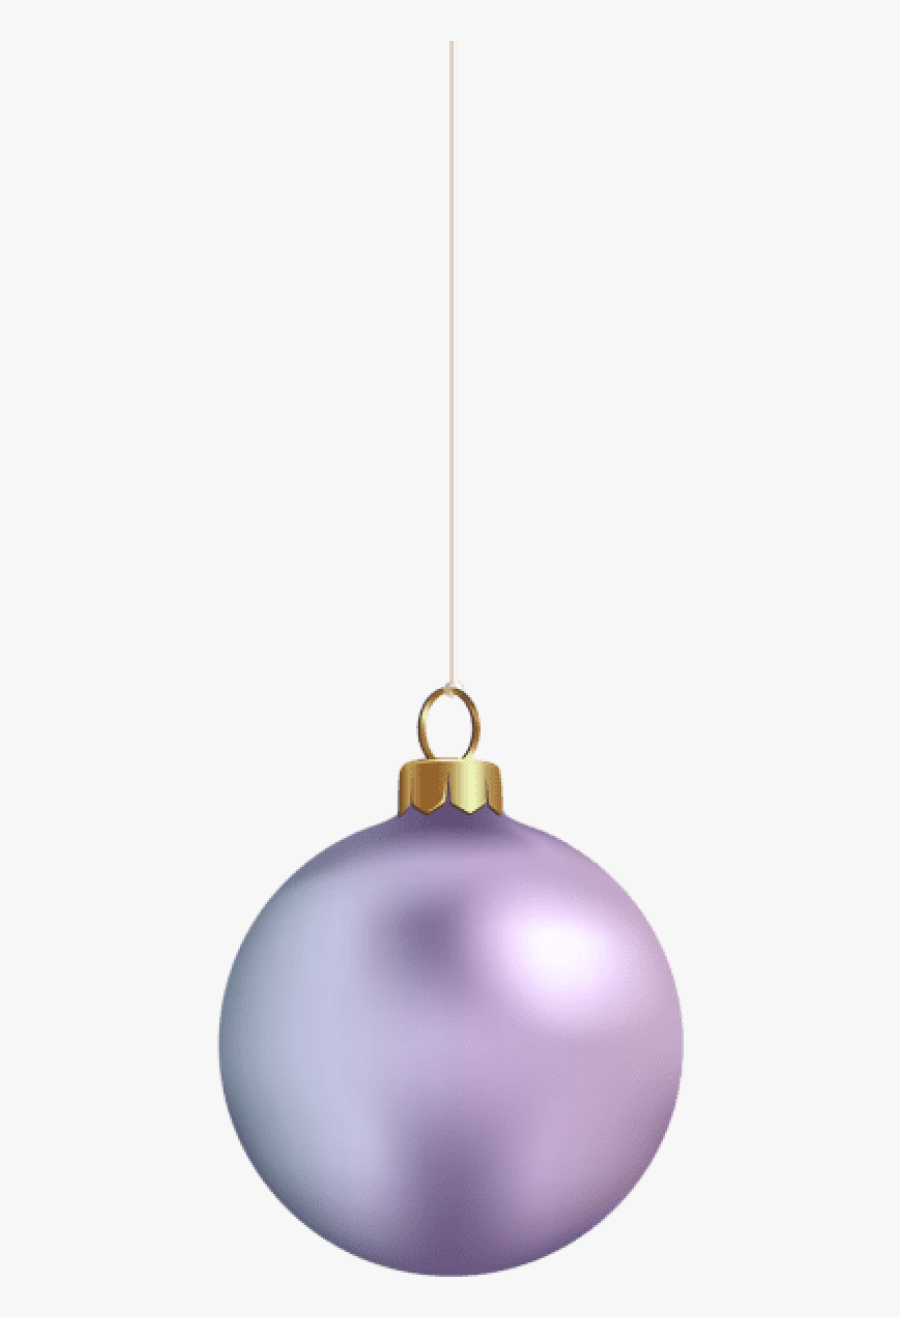 Transparent Hanging Christmas Ornaments Png - Christmas Ornament, Transparent Clipart